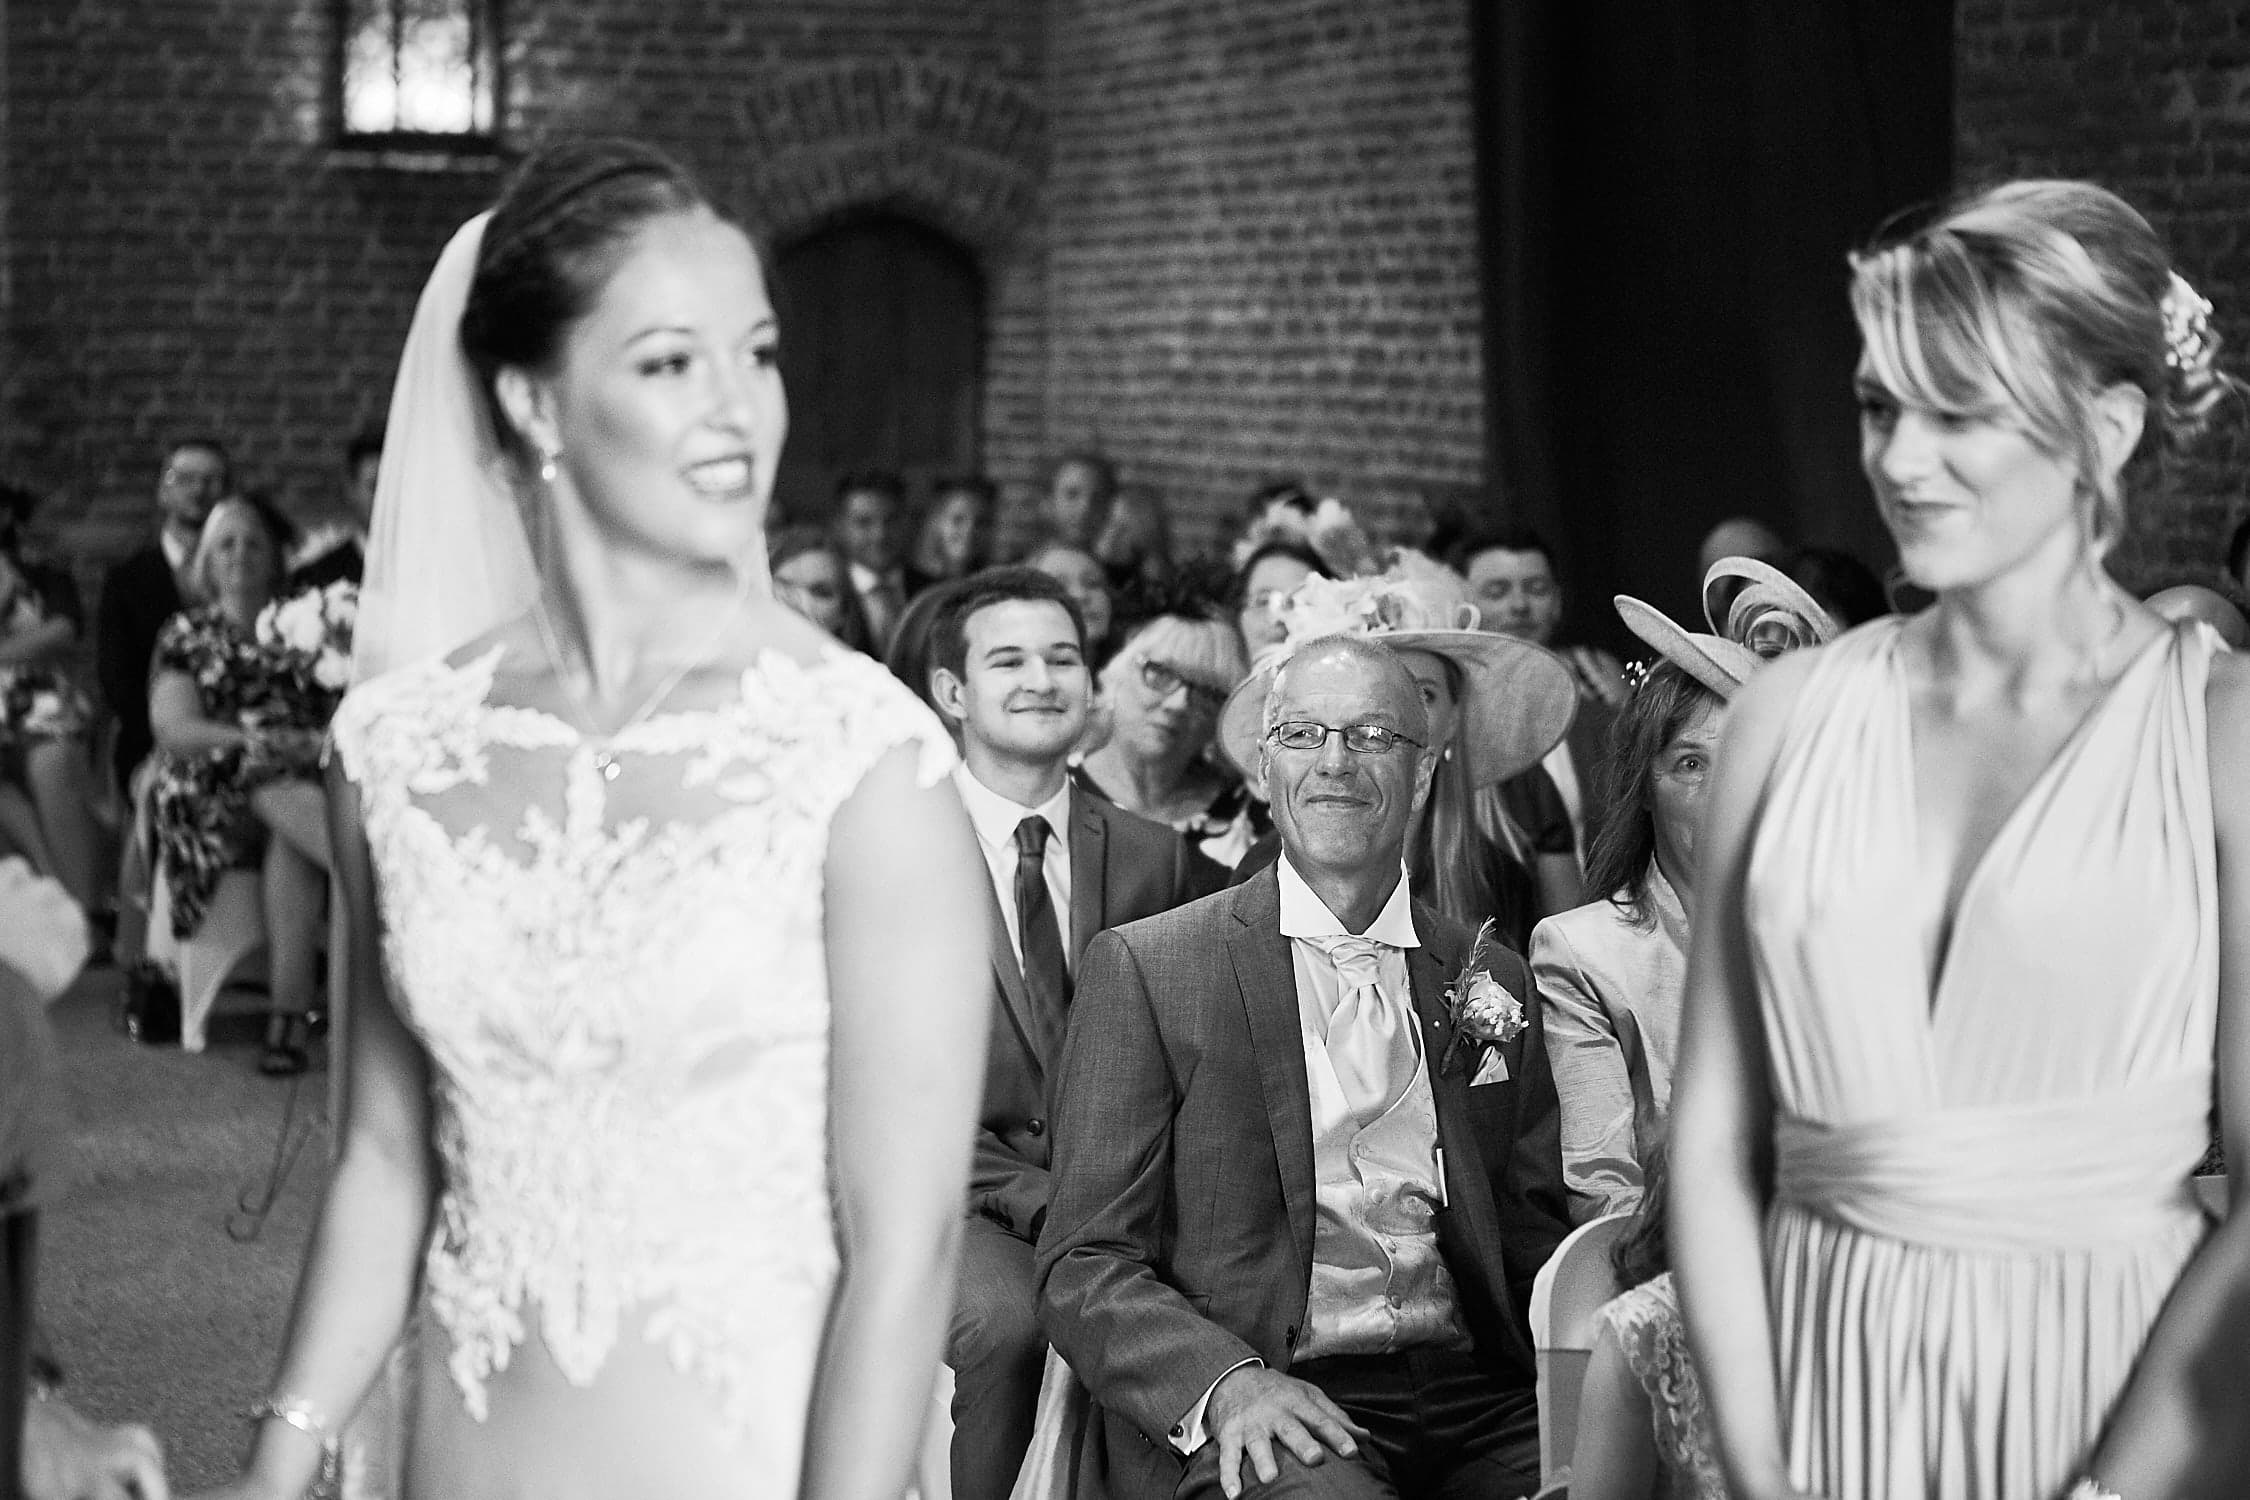 Father smiling at his daughter on wedding day